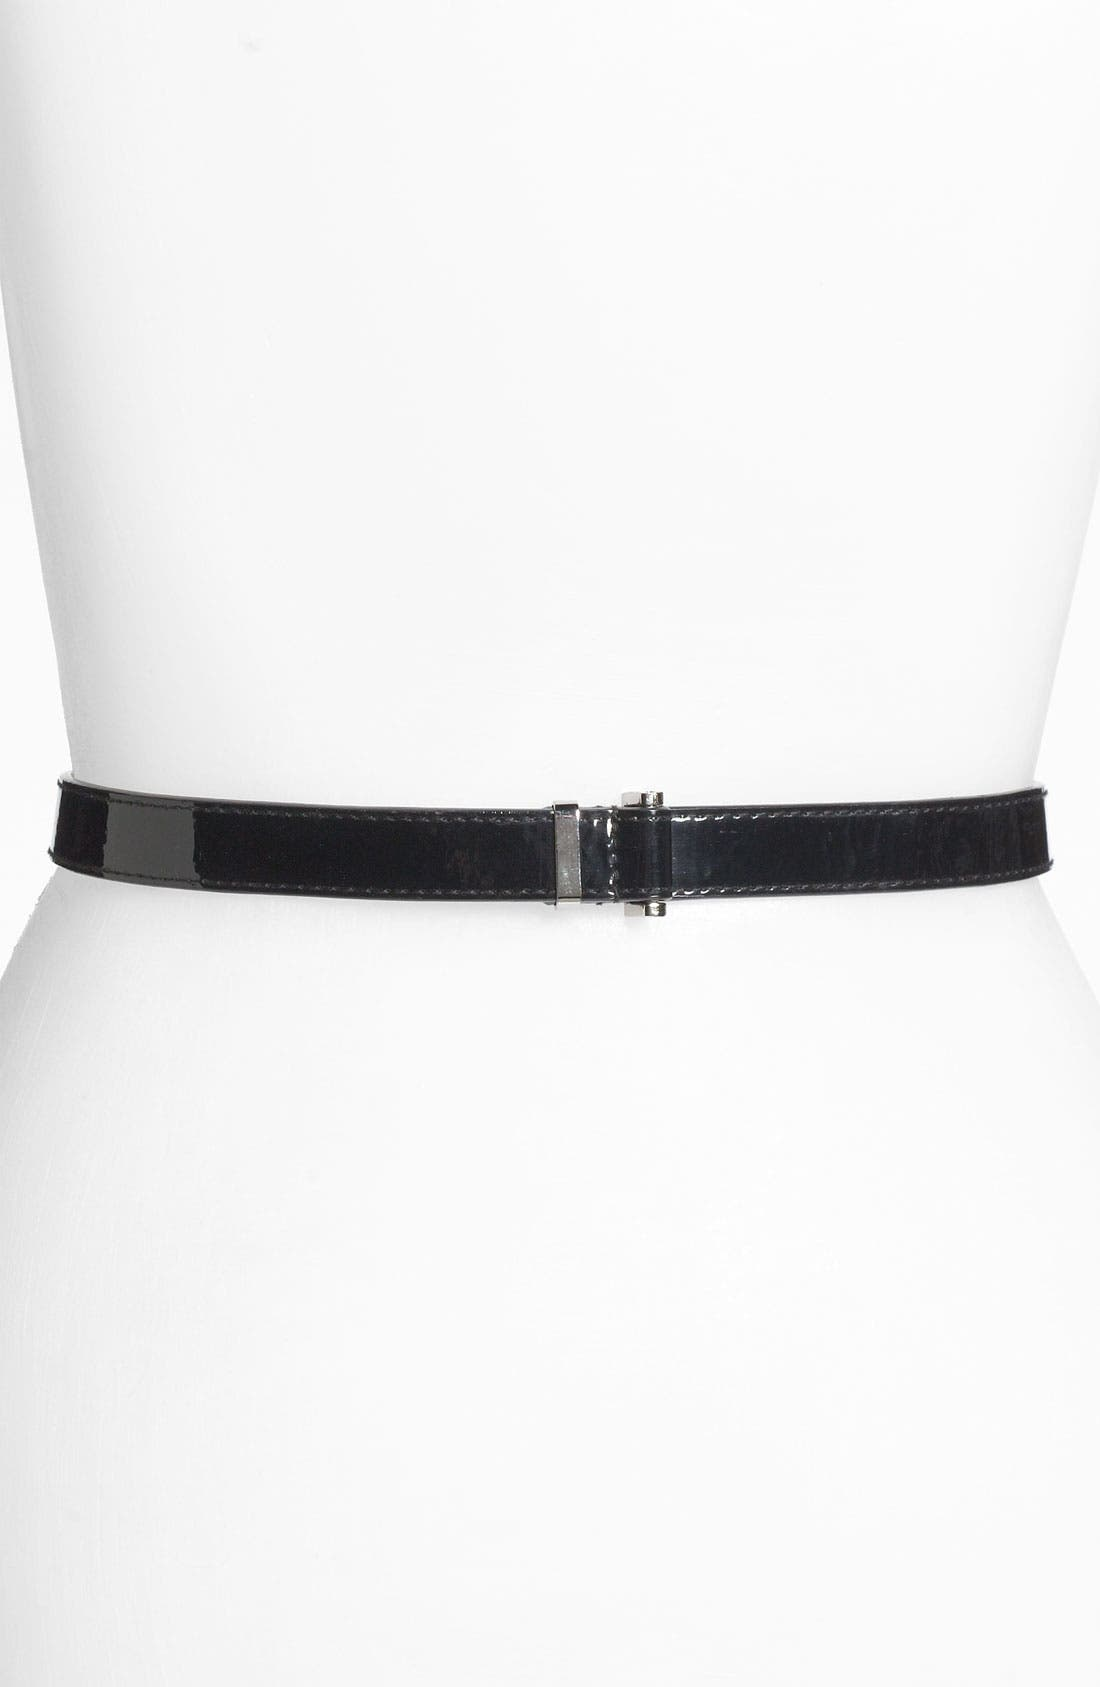 Alternate Image 1 Selected - WCM Patent Toggle Belt